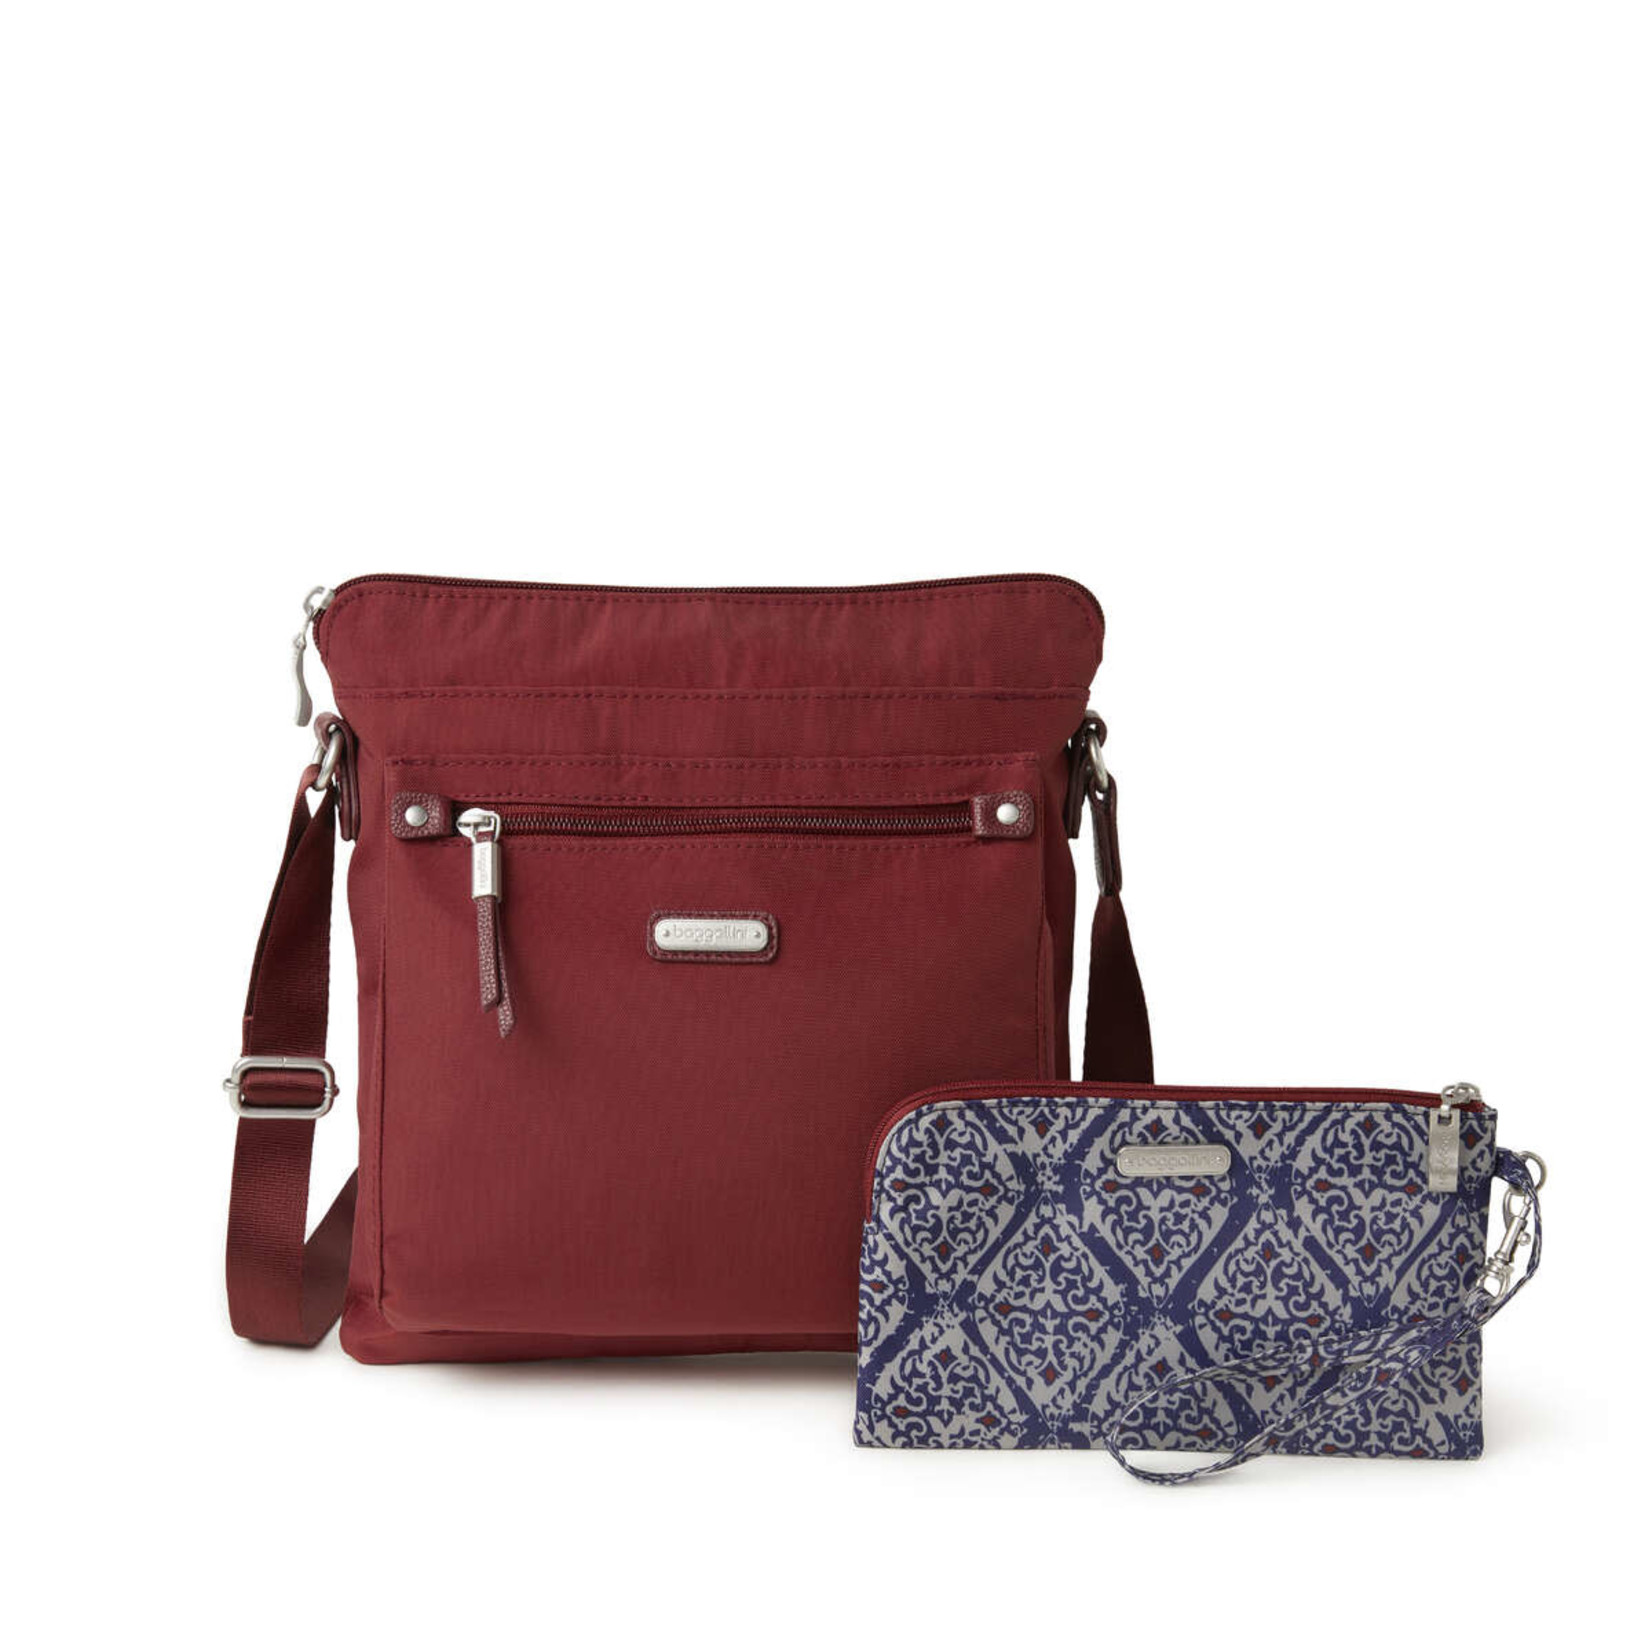 Baggallini Go Bagg with RFID Wristlet - Russet Red